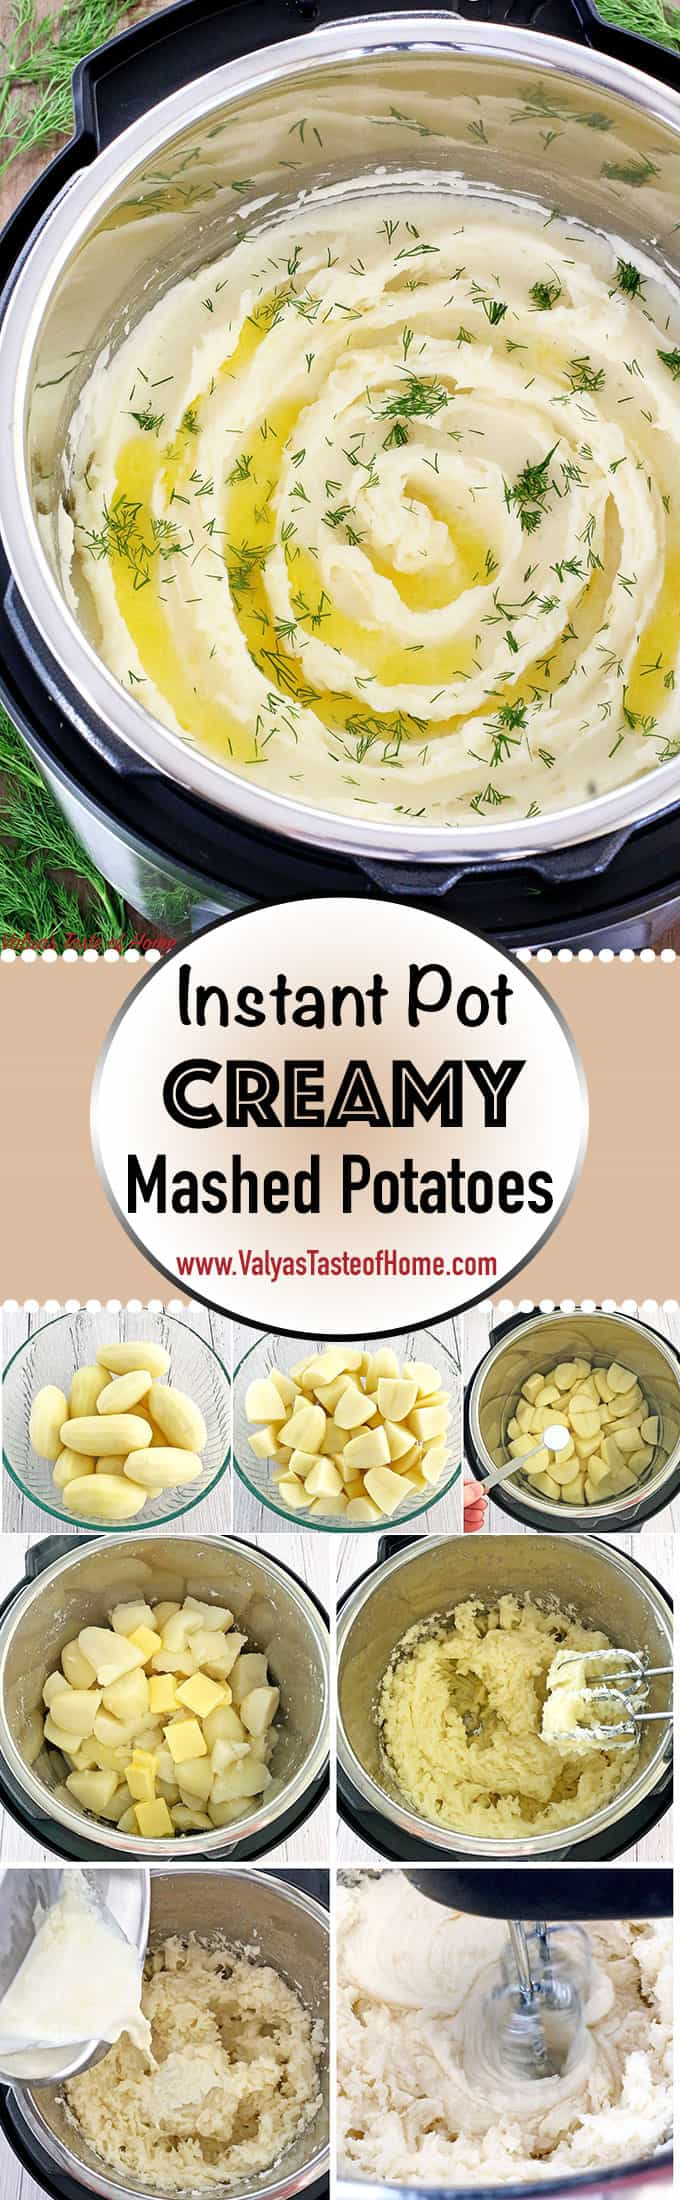 Is there anything more comforting food than Instant Pot Creamy Mashed Potatoes Recipe? Mashed potatoes are also said to be a secondary bread for most people, especially in the countryside I was born. It was as common as bread because kids love it and its very filling. #instantpotmashedpotatoes #creamymashedpotatoes #maindish #comfortfood #valyastasteofhome